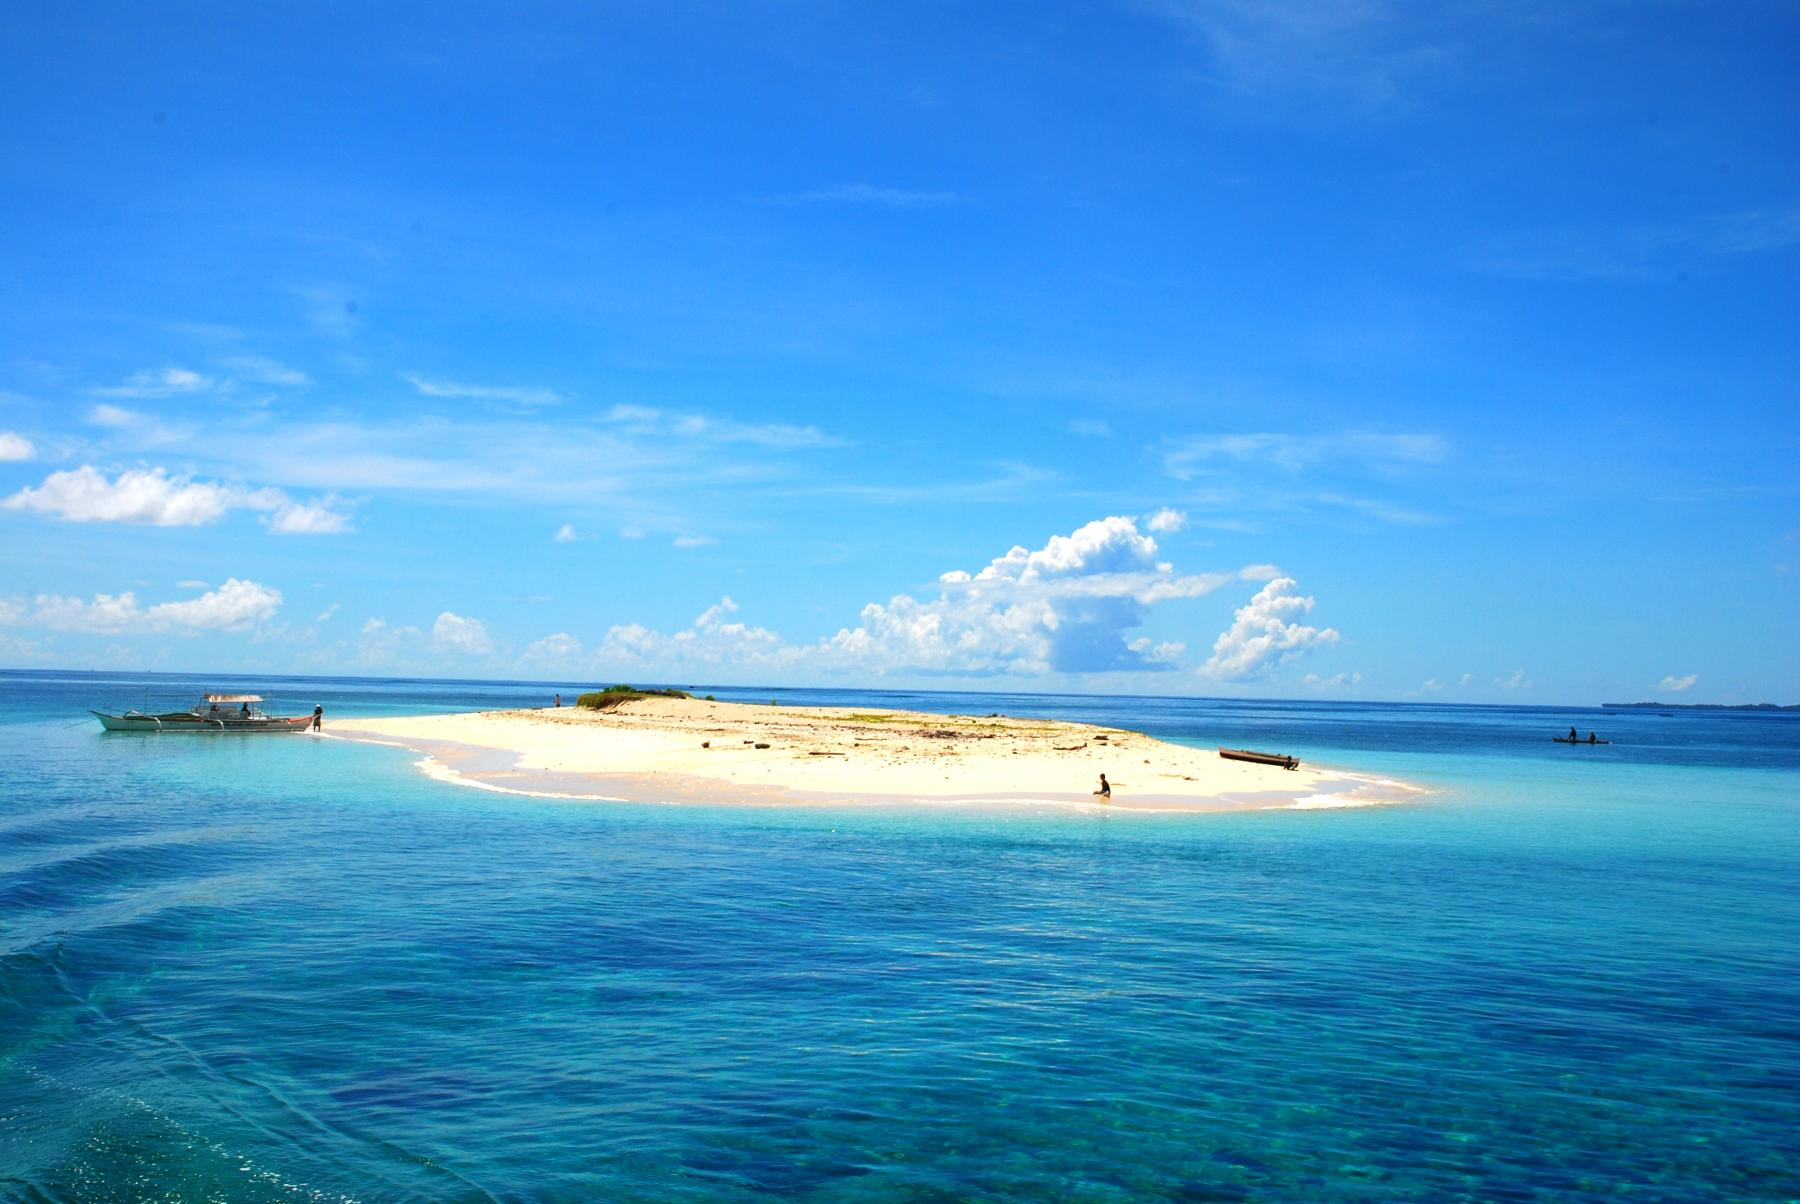 To the Caves, Coves, Islands, and Jellyfish of Siargao Island starting at Surigao del Norte, Philippines